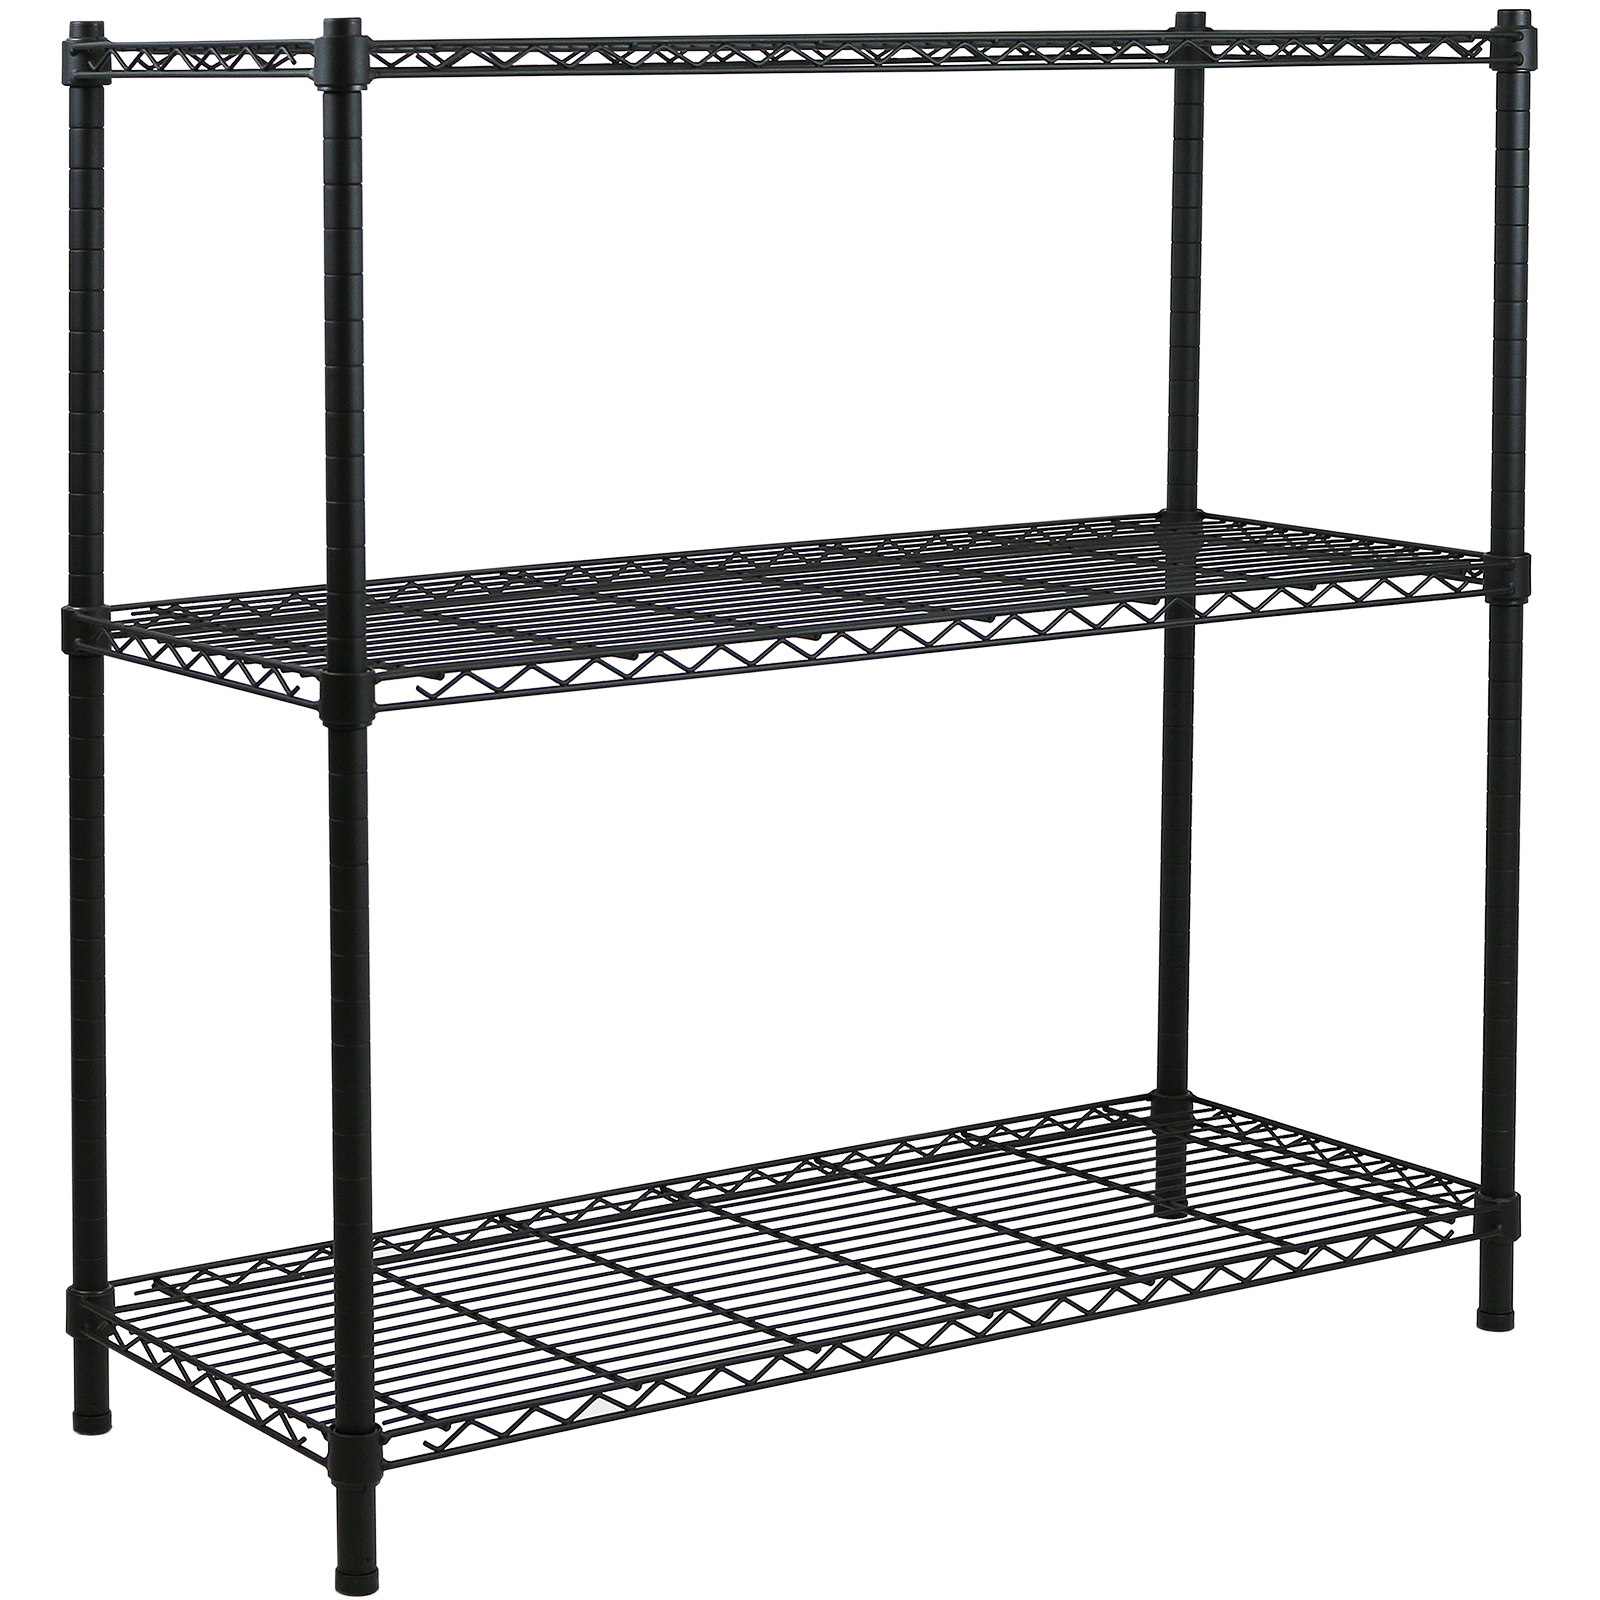 3 Tier Metal Storage Rack Shelving Book Shelf Kitchen